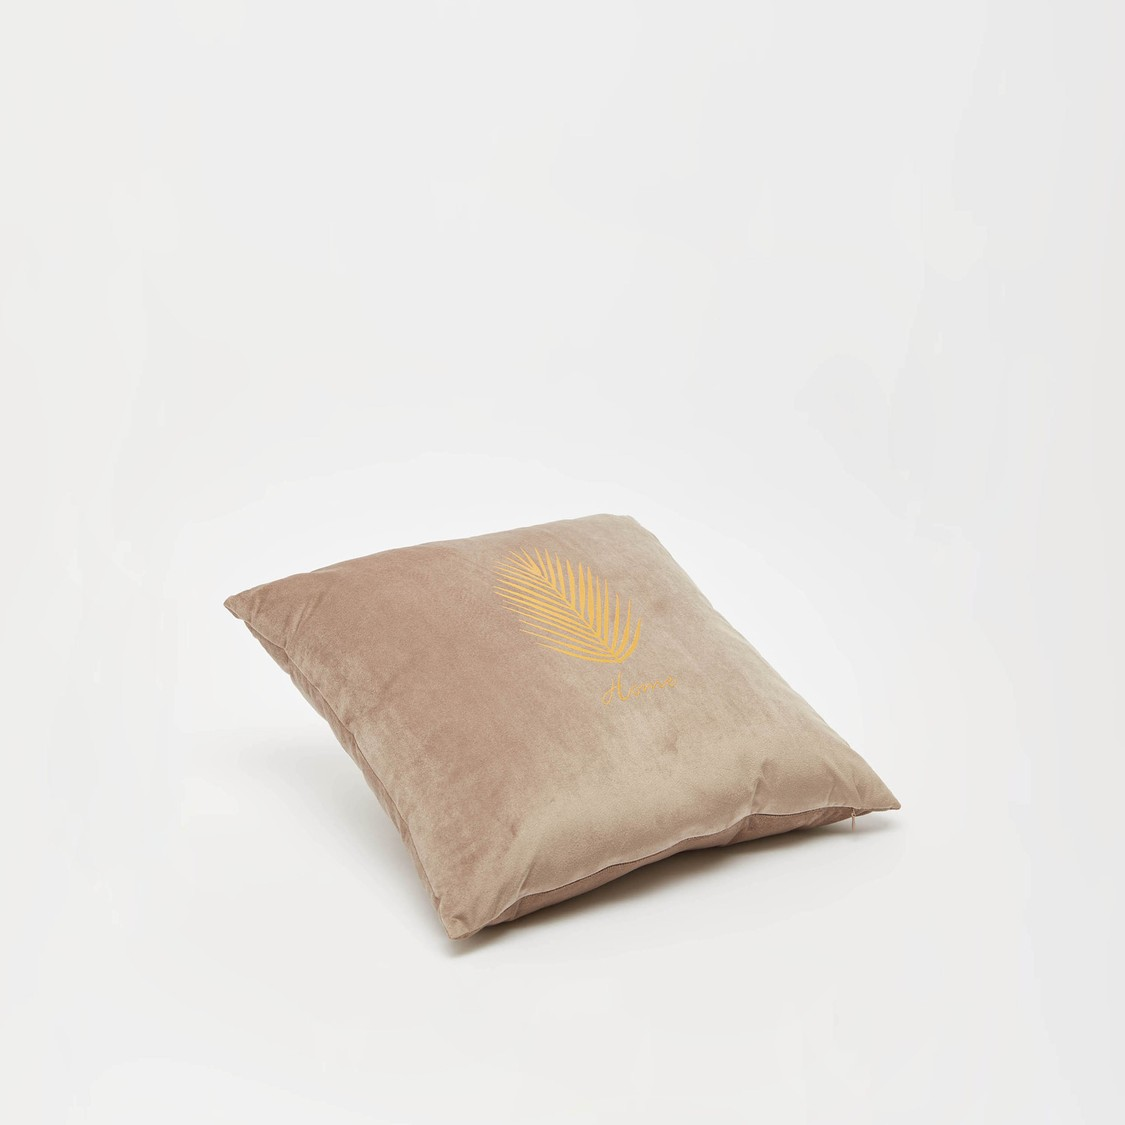 Printed Square Filled Cushion with Zip Closure - 45x45 cms